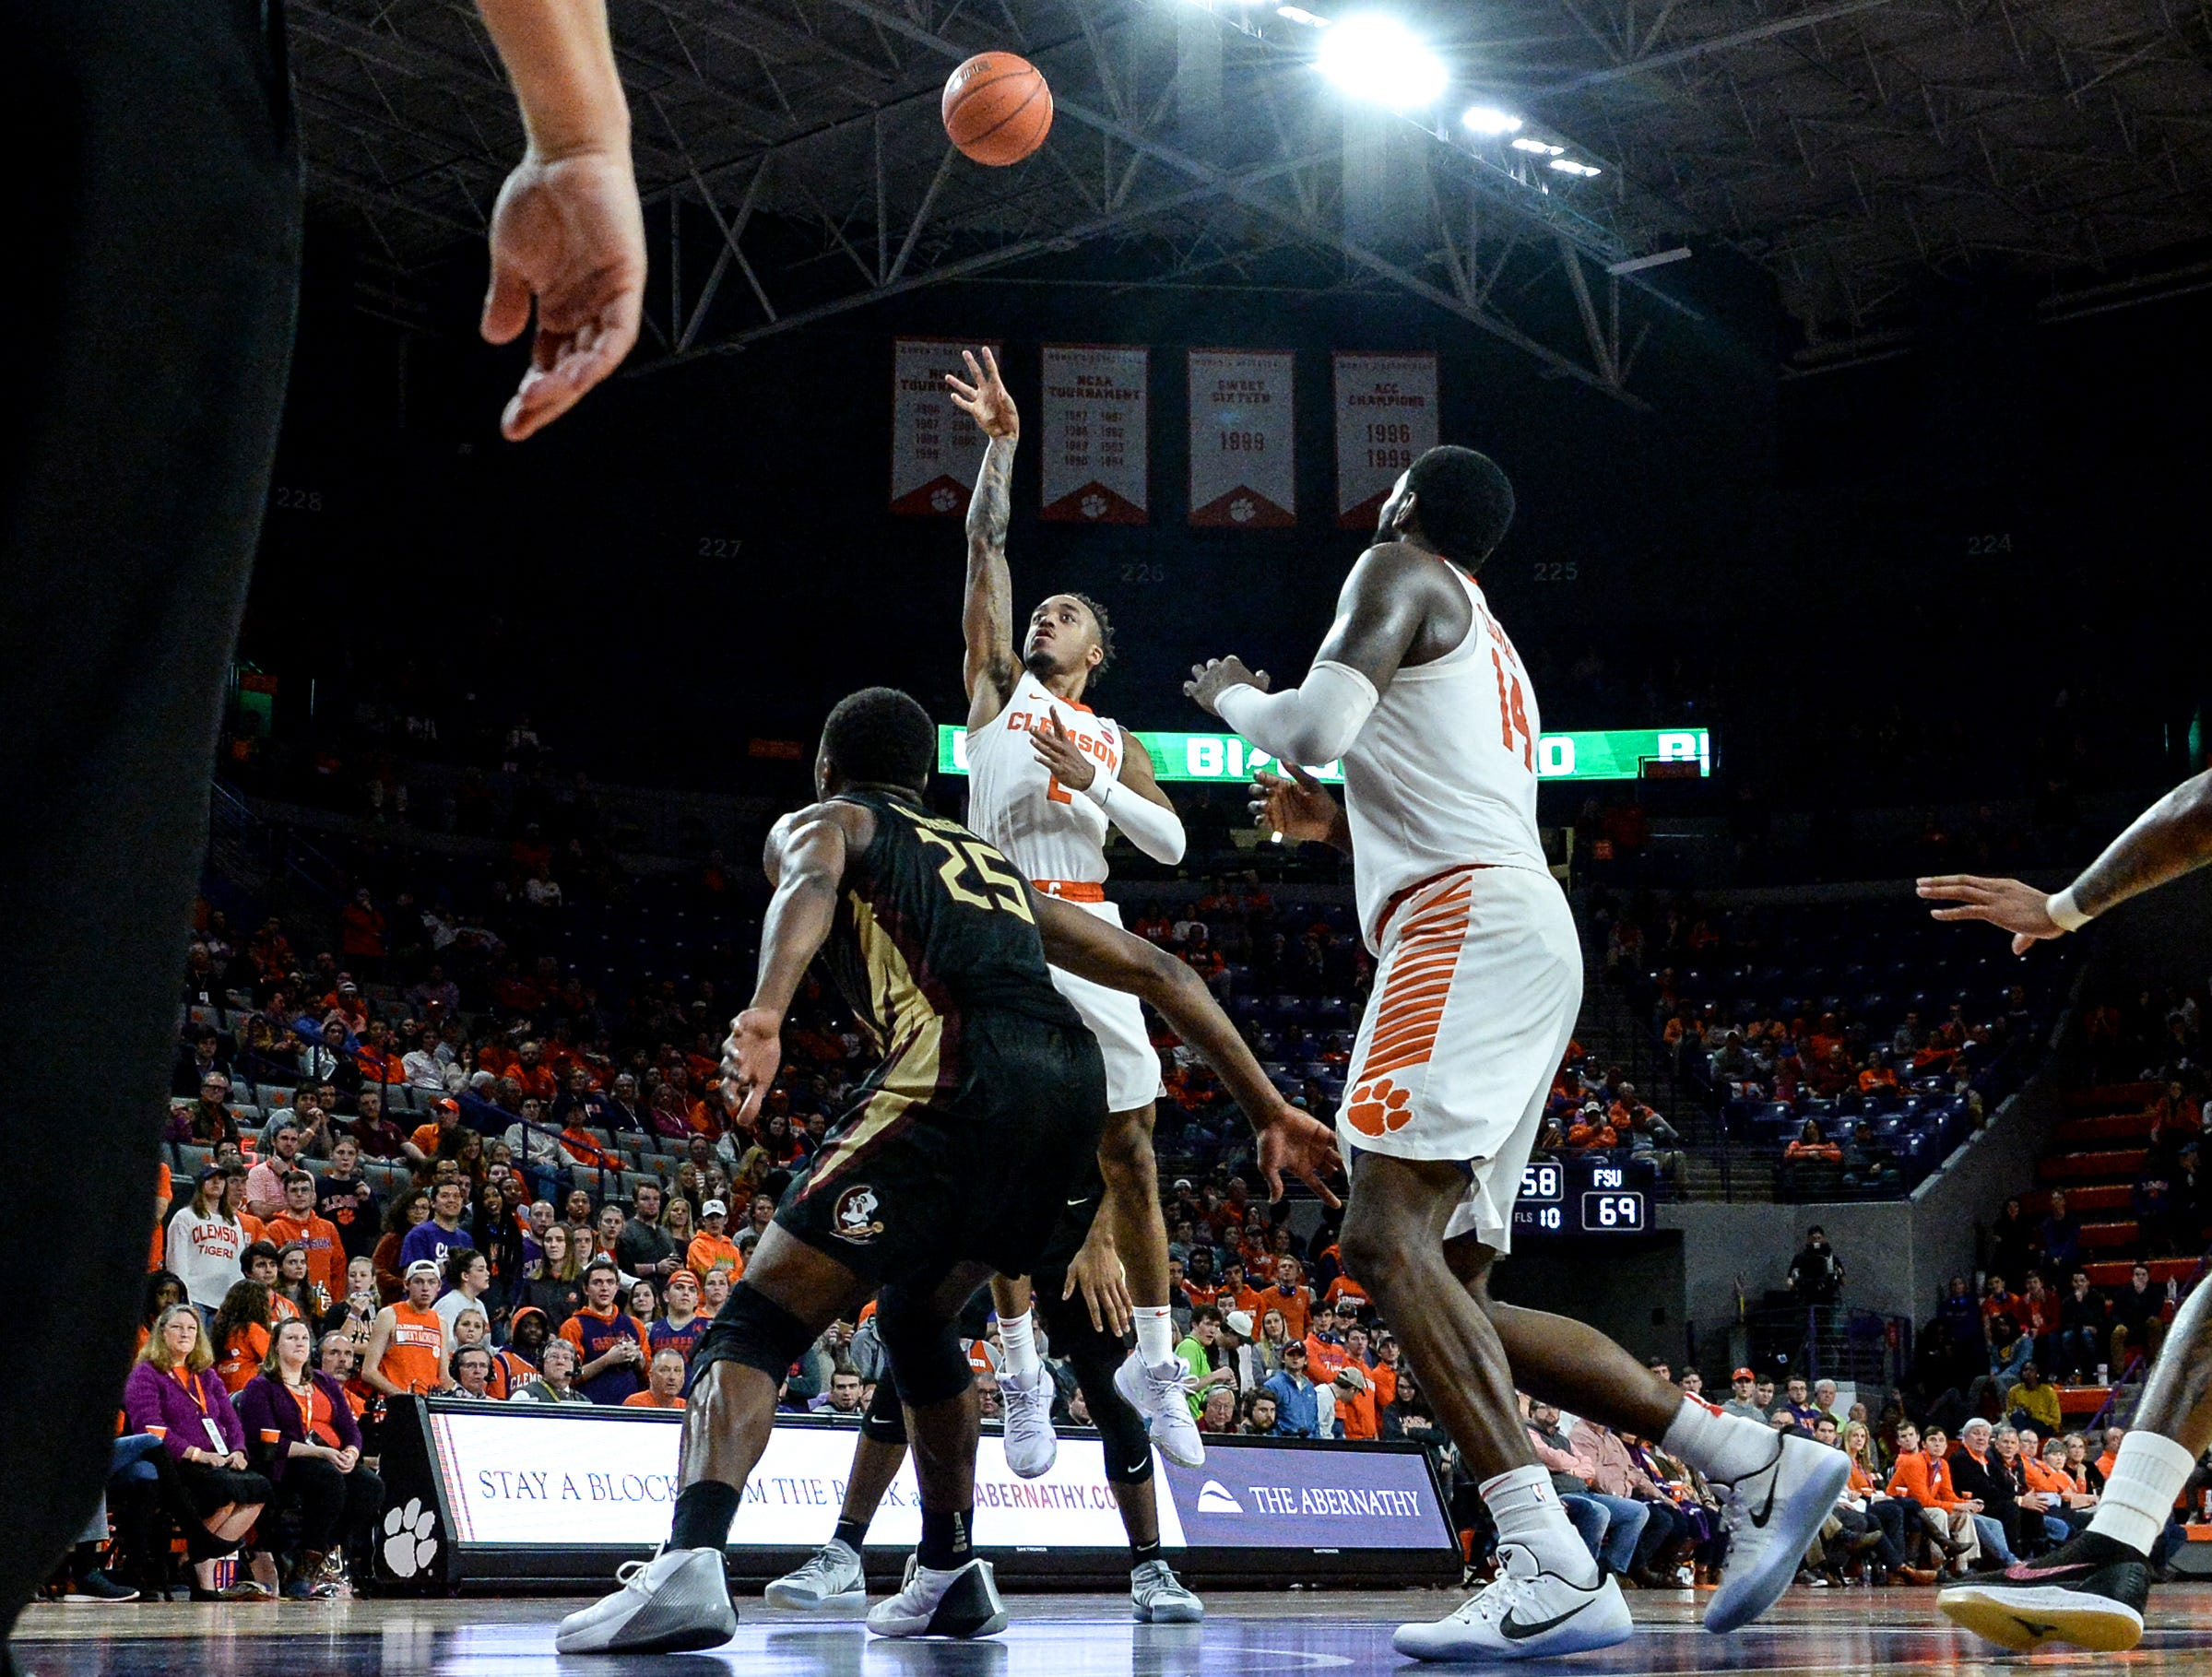 Clemson guard Marcquise Reed (2) shoots near Florida State forward Mfiondu Kabengele(25) during the second half at Littlejohn Coliseum in Clemson Tuesday, February 19, 2019.